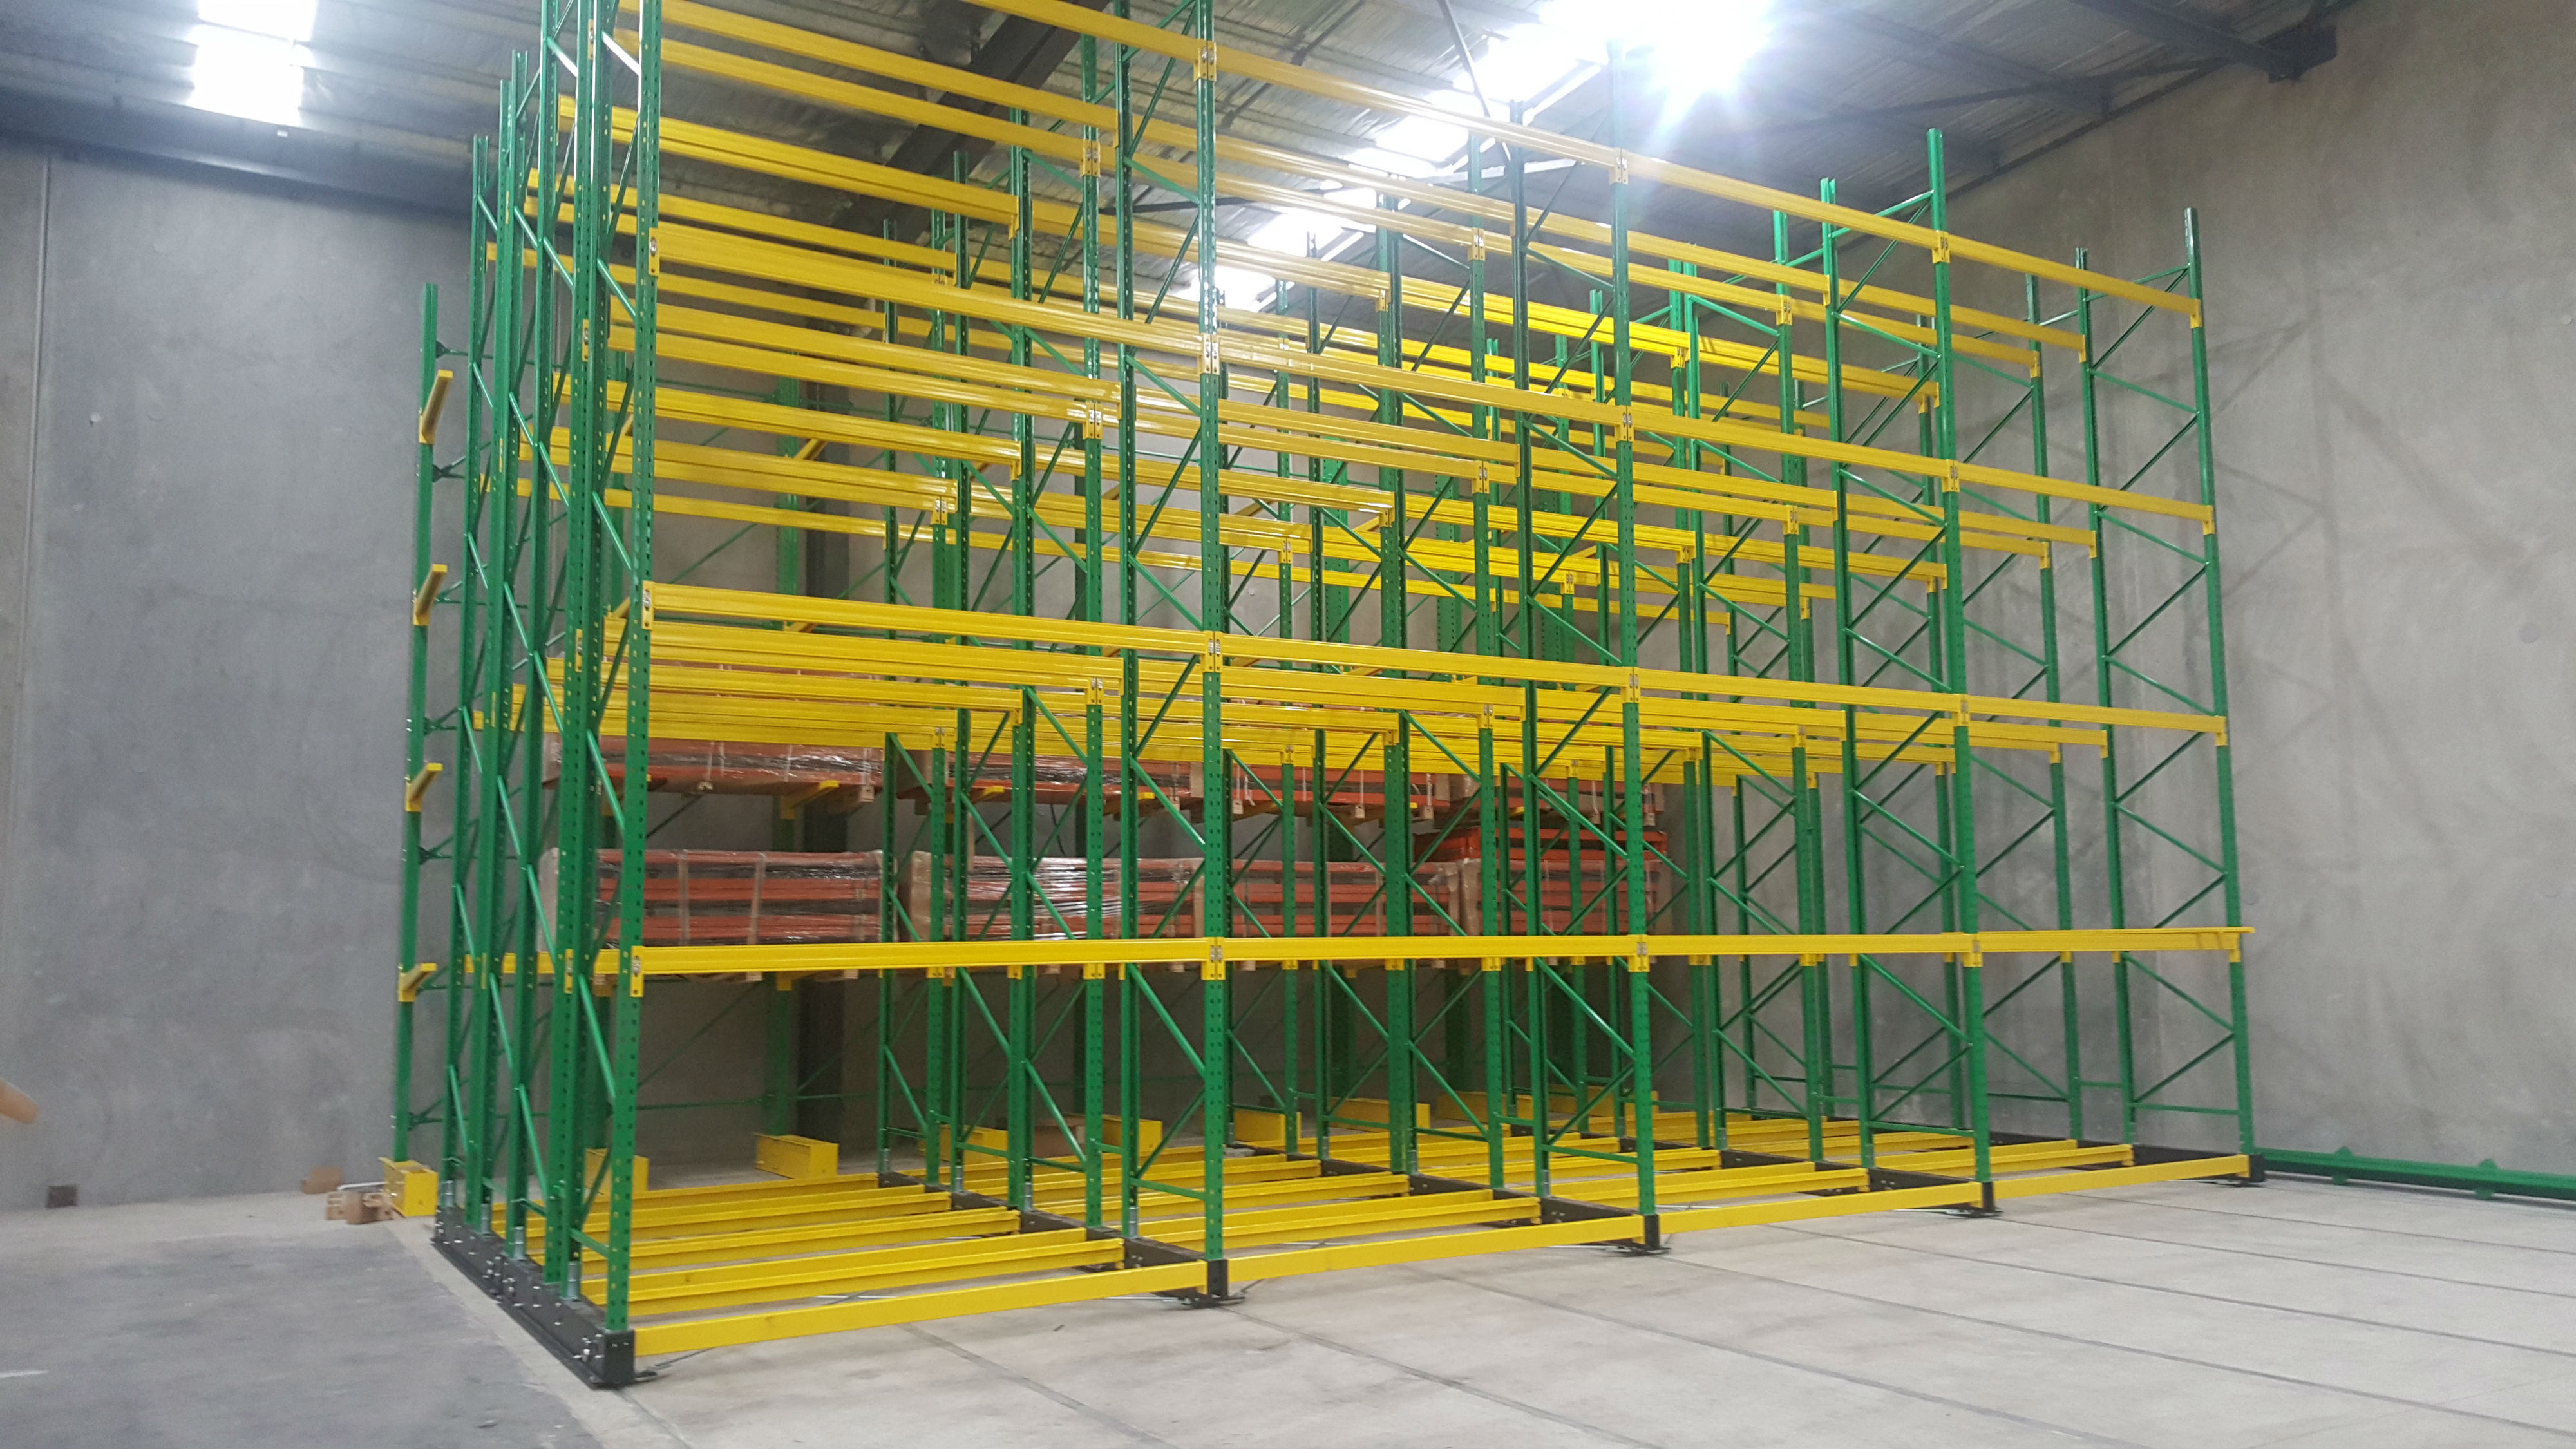 five layers green and yellow goods shelf